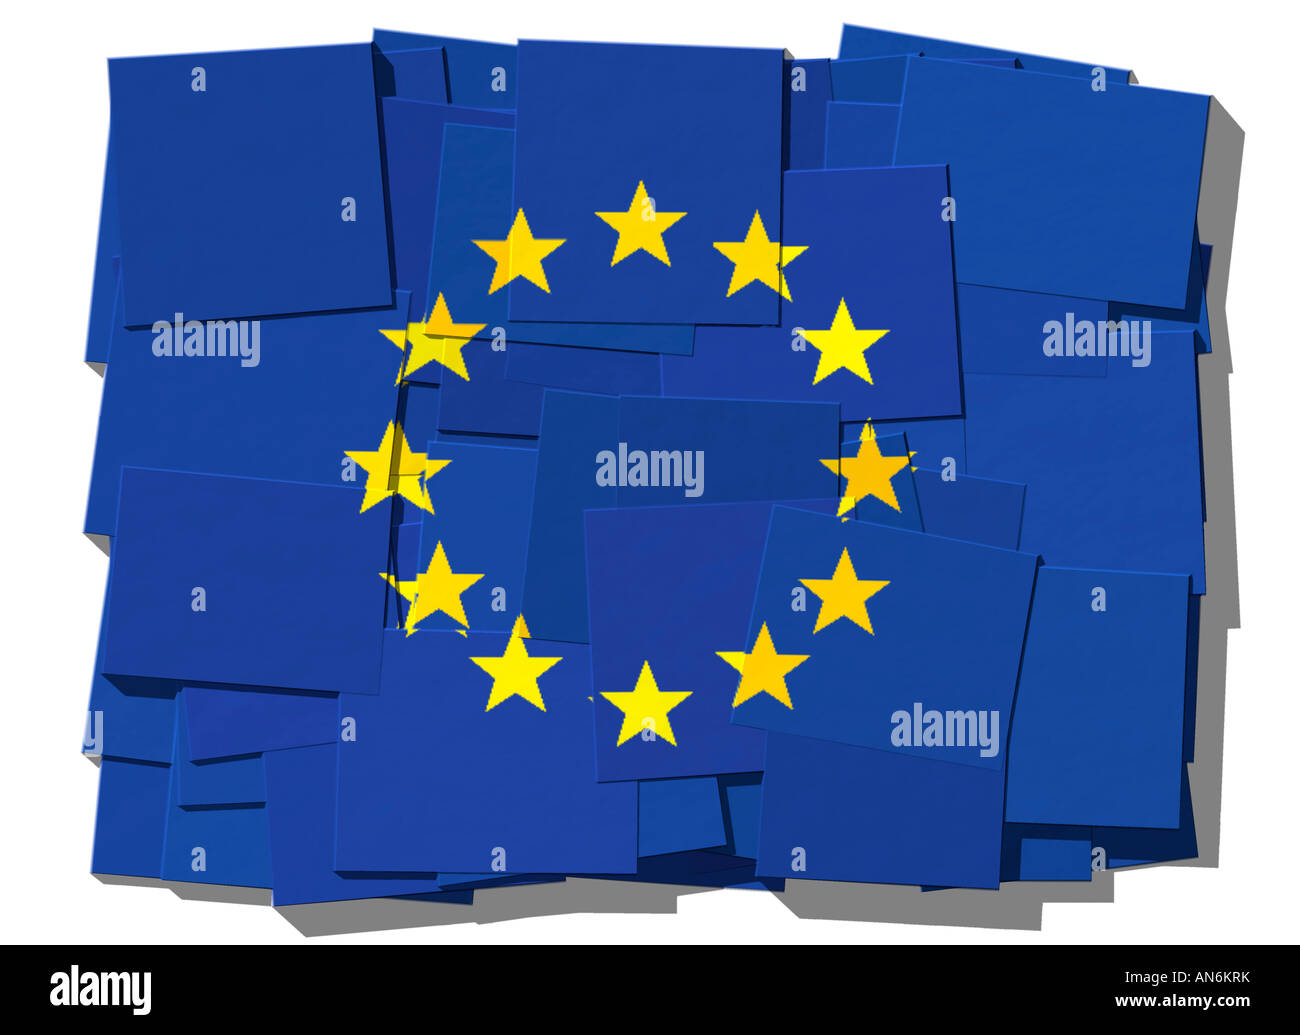 Flag of EU European Union - Stock Image